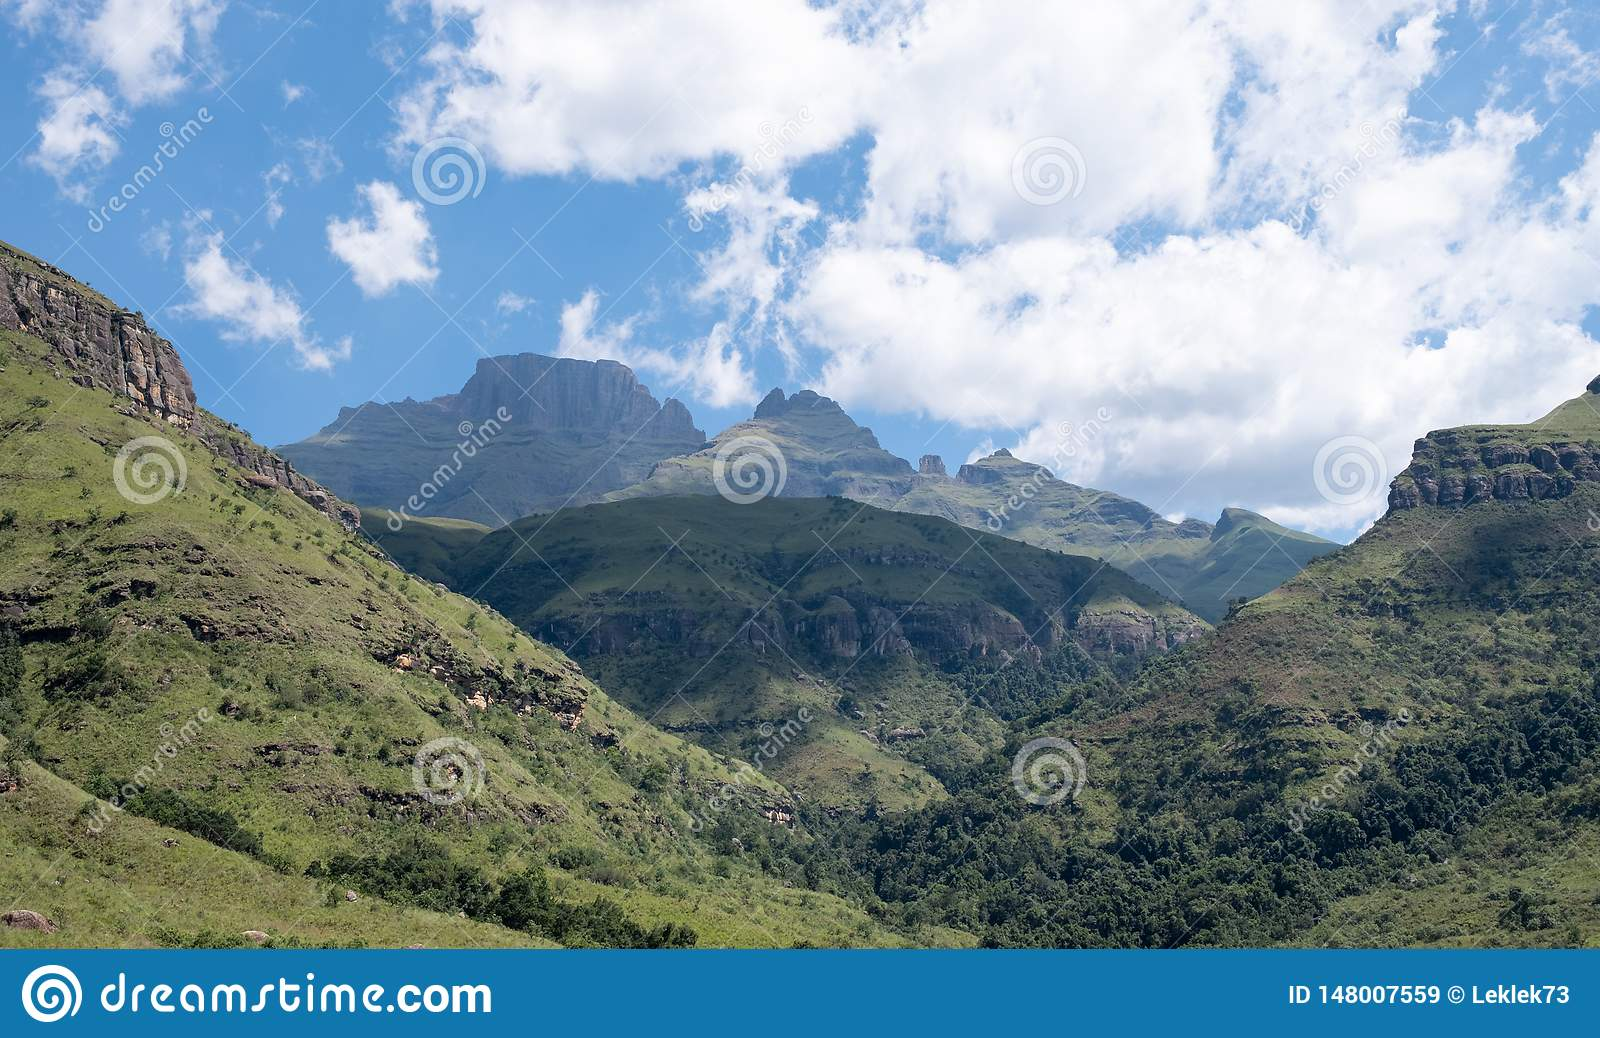 Champagne Valley near Winterton, forming part of the central Drakensberg mountain range, Kwazulu Natal, South Africa.